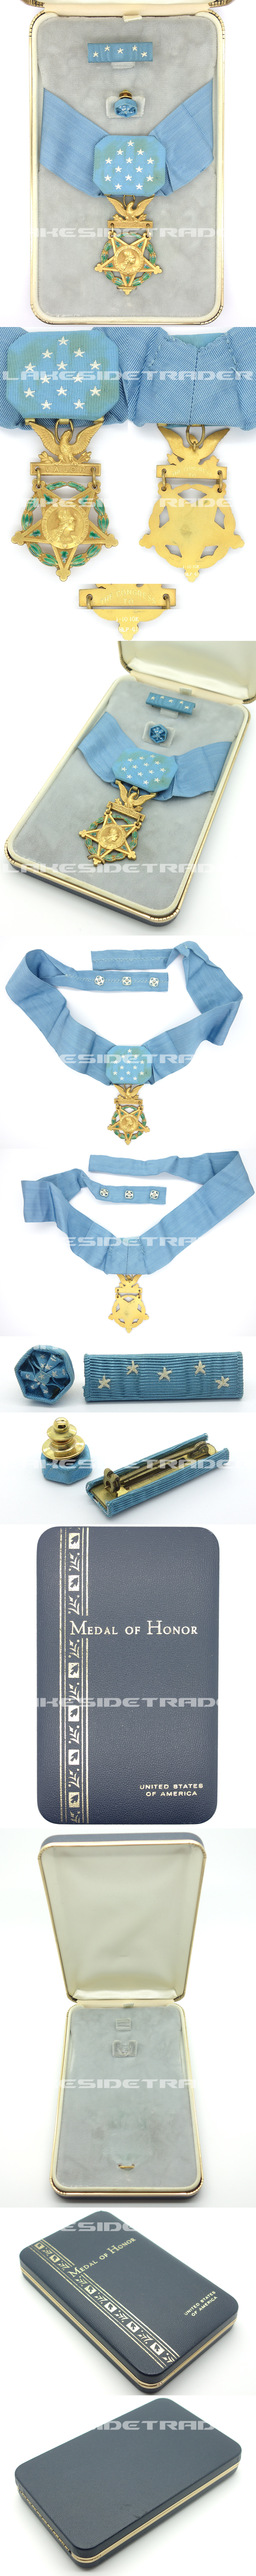 Unissued American Army Medal of Honor